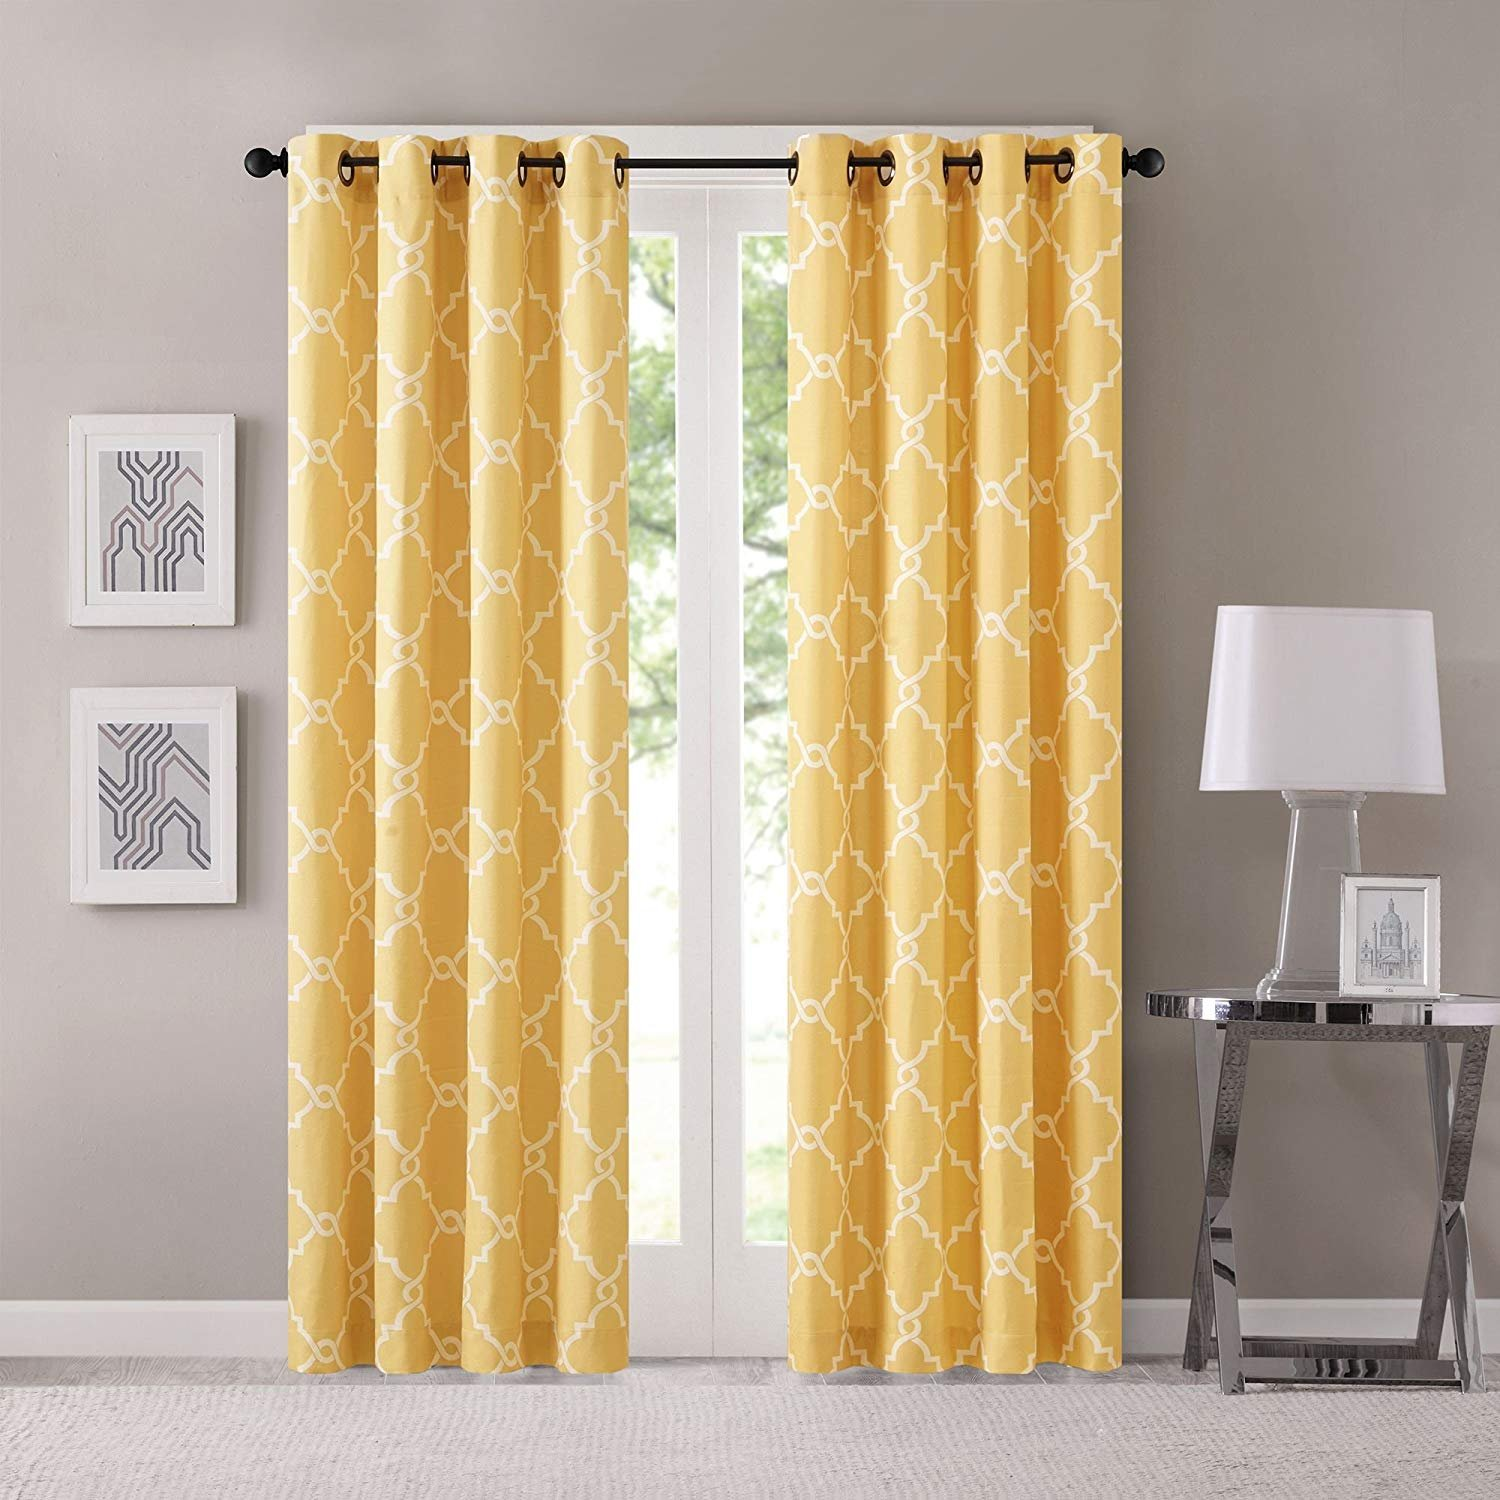 Yellow Curtains For Living Room Modern Contemporary Window